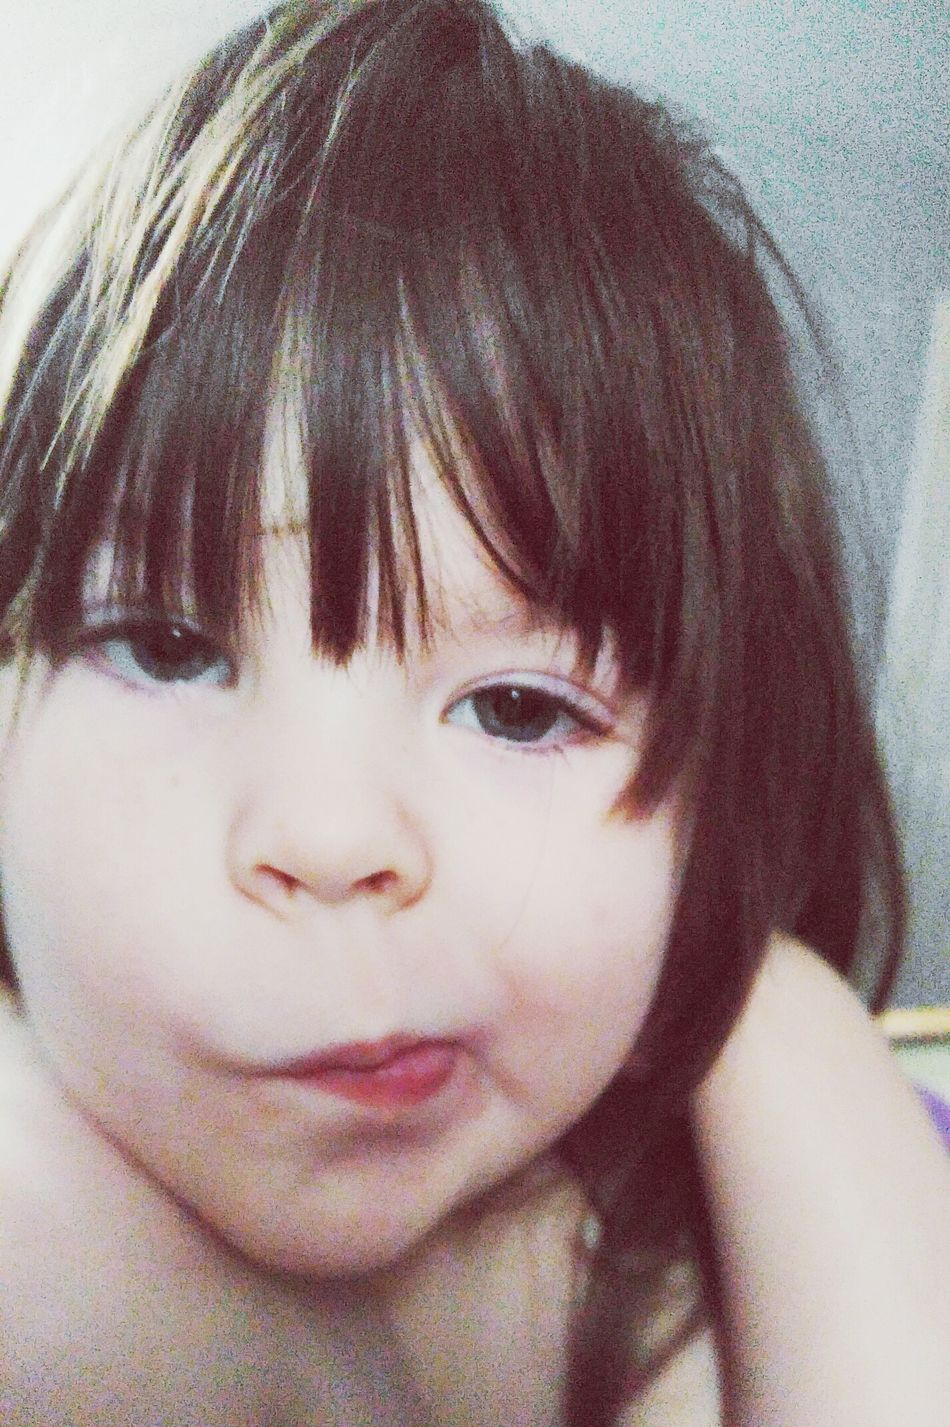 EyeEm Best Shots Kids Portrait Children's Portraits Kids Being Kids Child Photography Silly Girl Funny Face Funny Kid